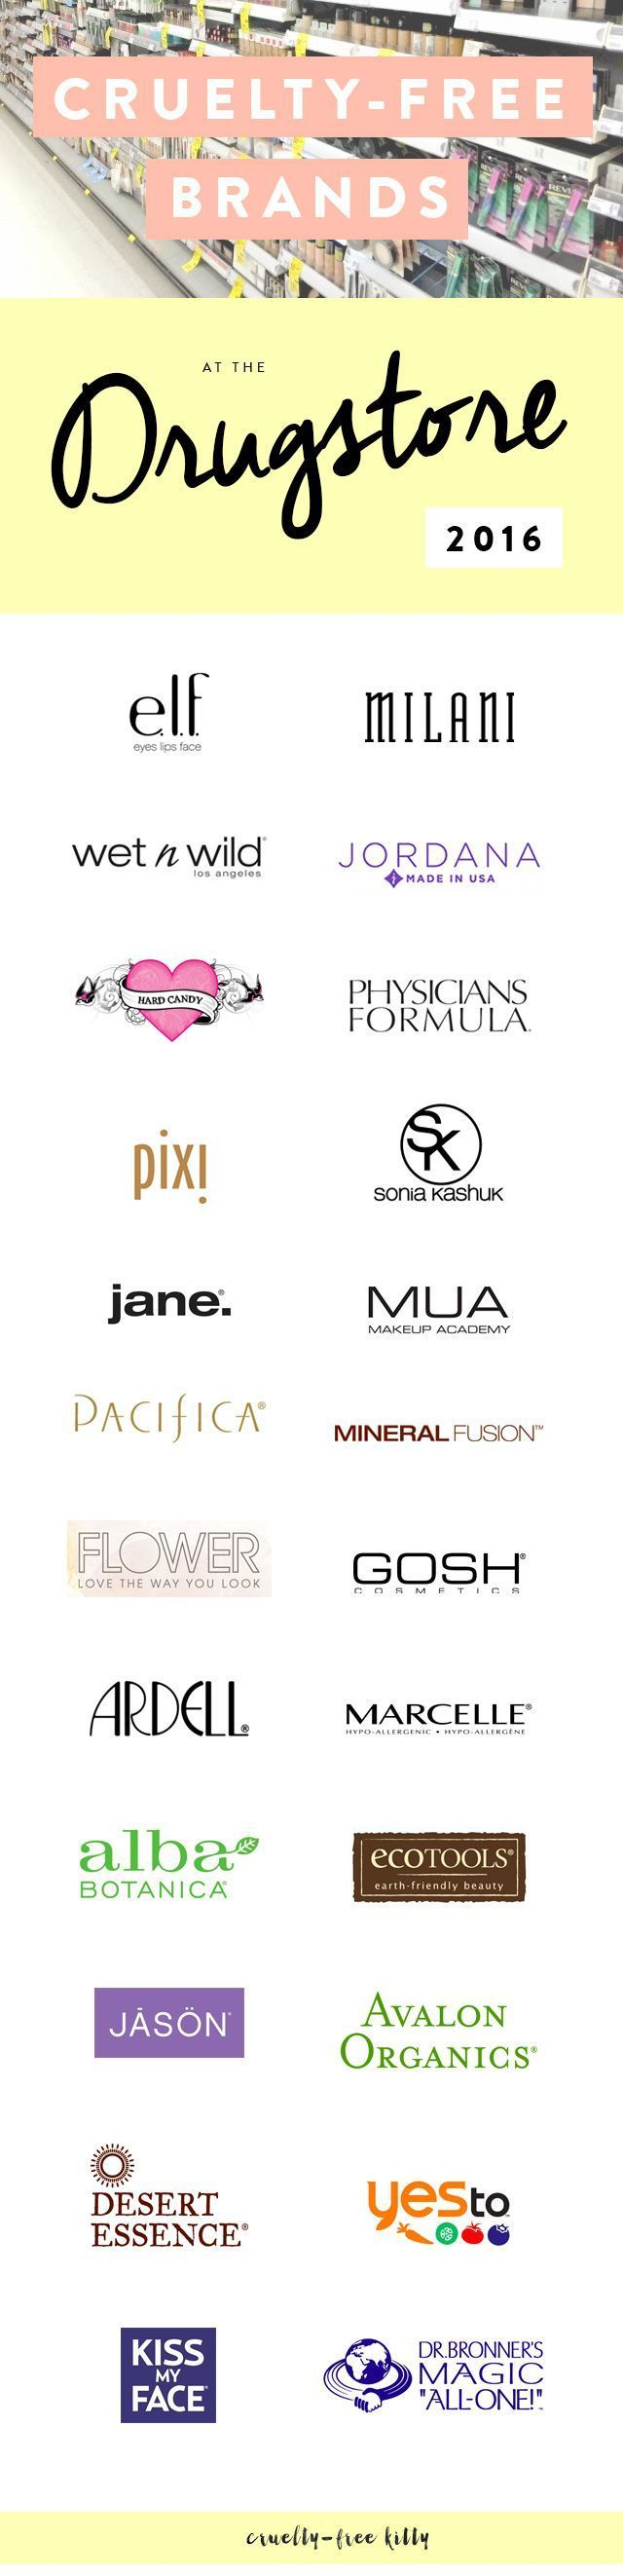 A ton of affordable cruelty-free brands!